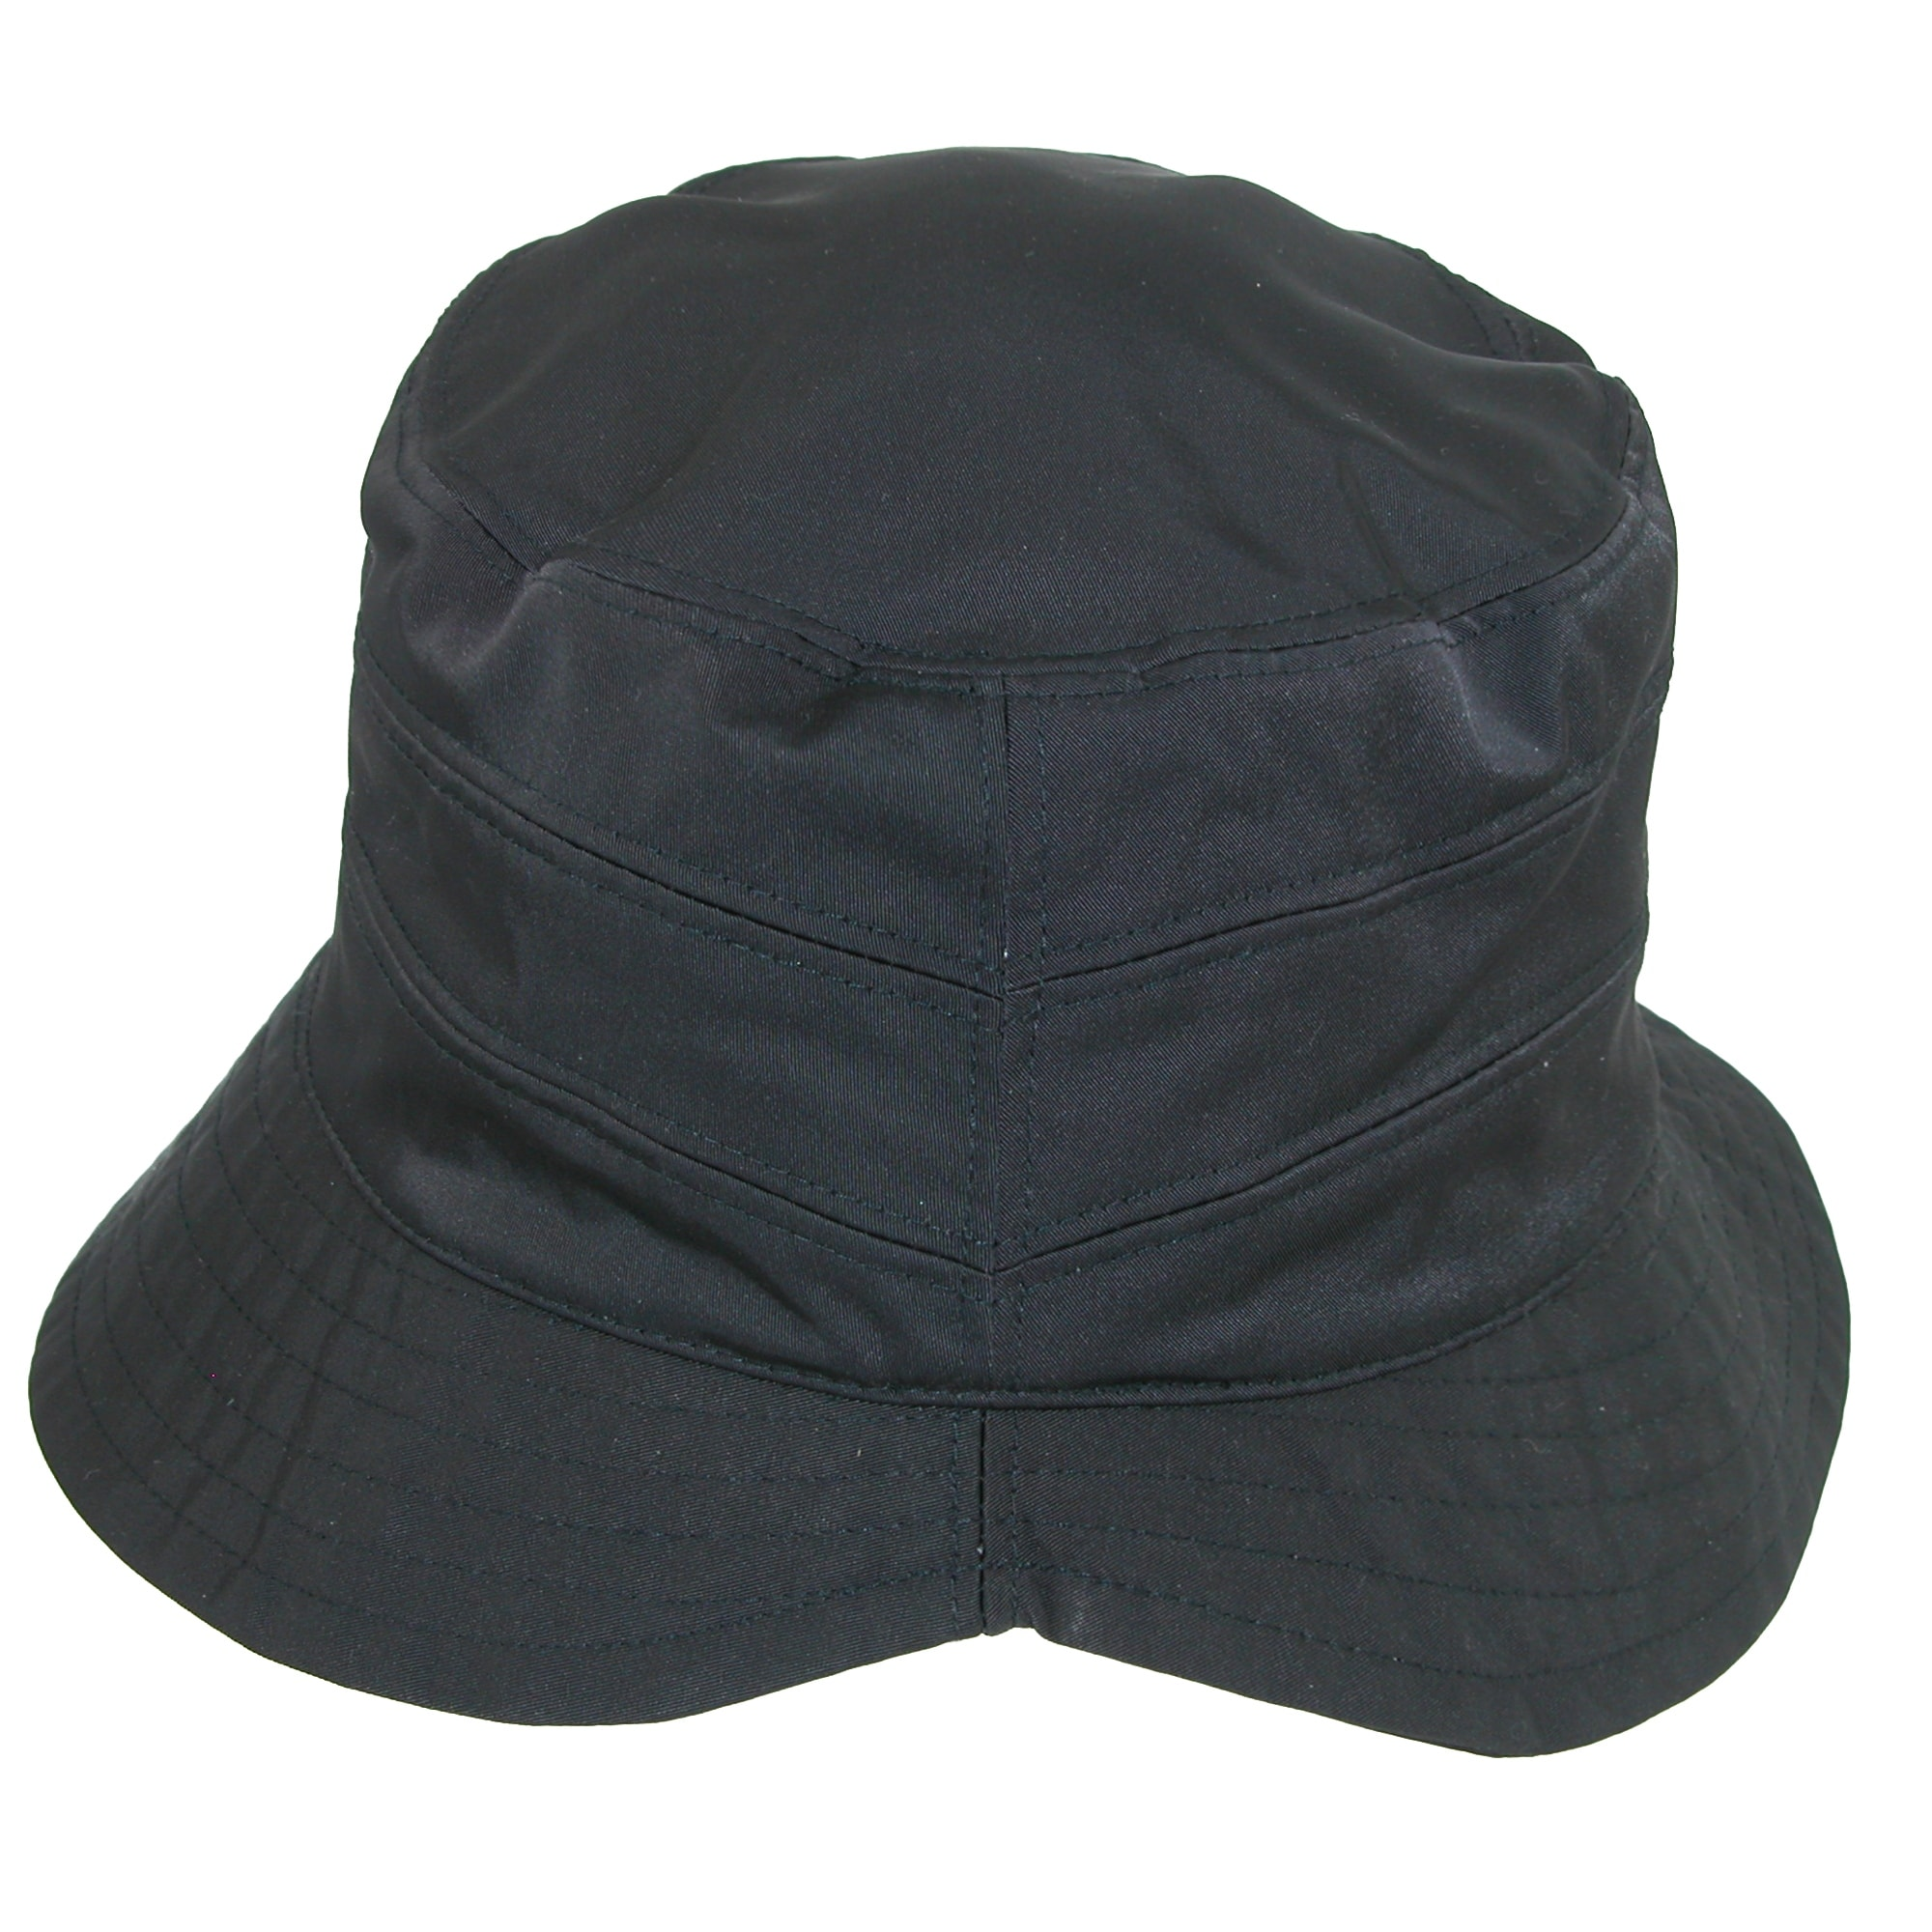 d2a8410e Shop Dorfman Pacific Women's Adjustable Nylon Water Repellent Lined Rain Hat  - Free Shipping On Orders Over $45 - Overstock - 17018315